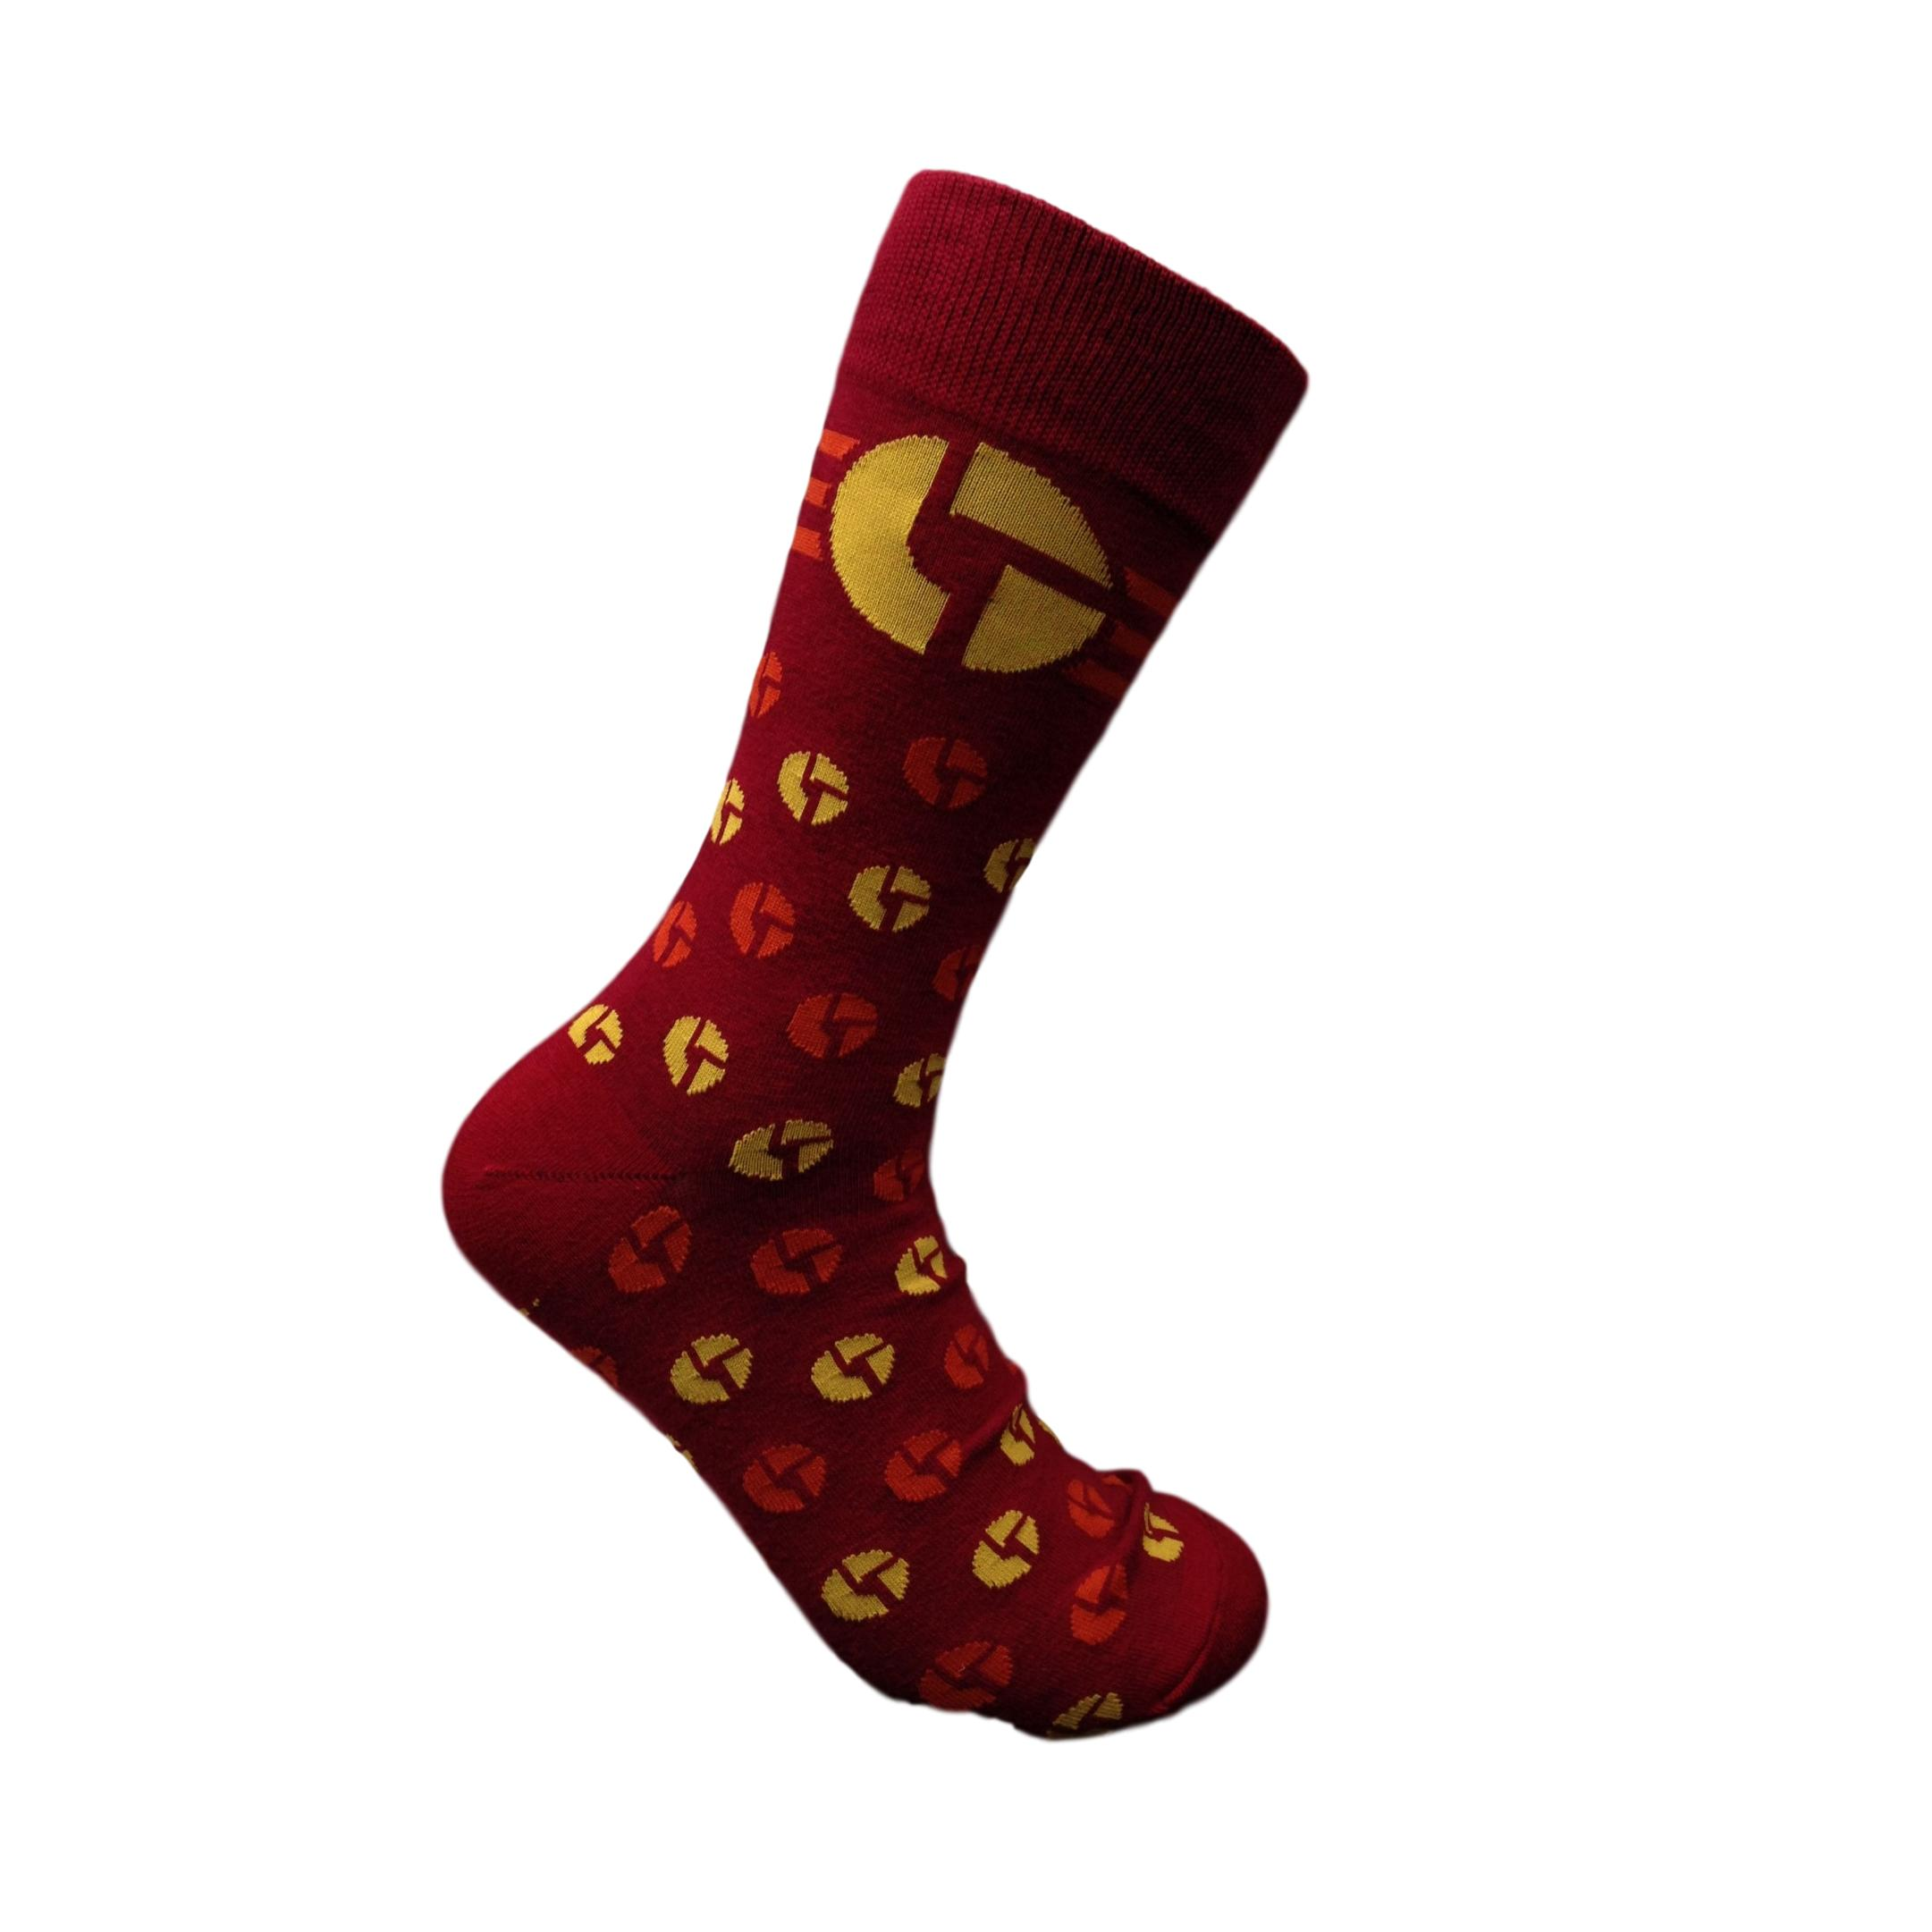 disco biscuits red socks_clipped_rev_1